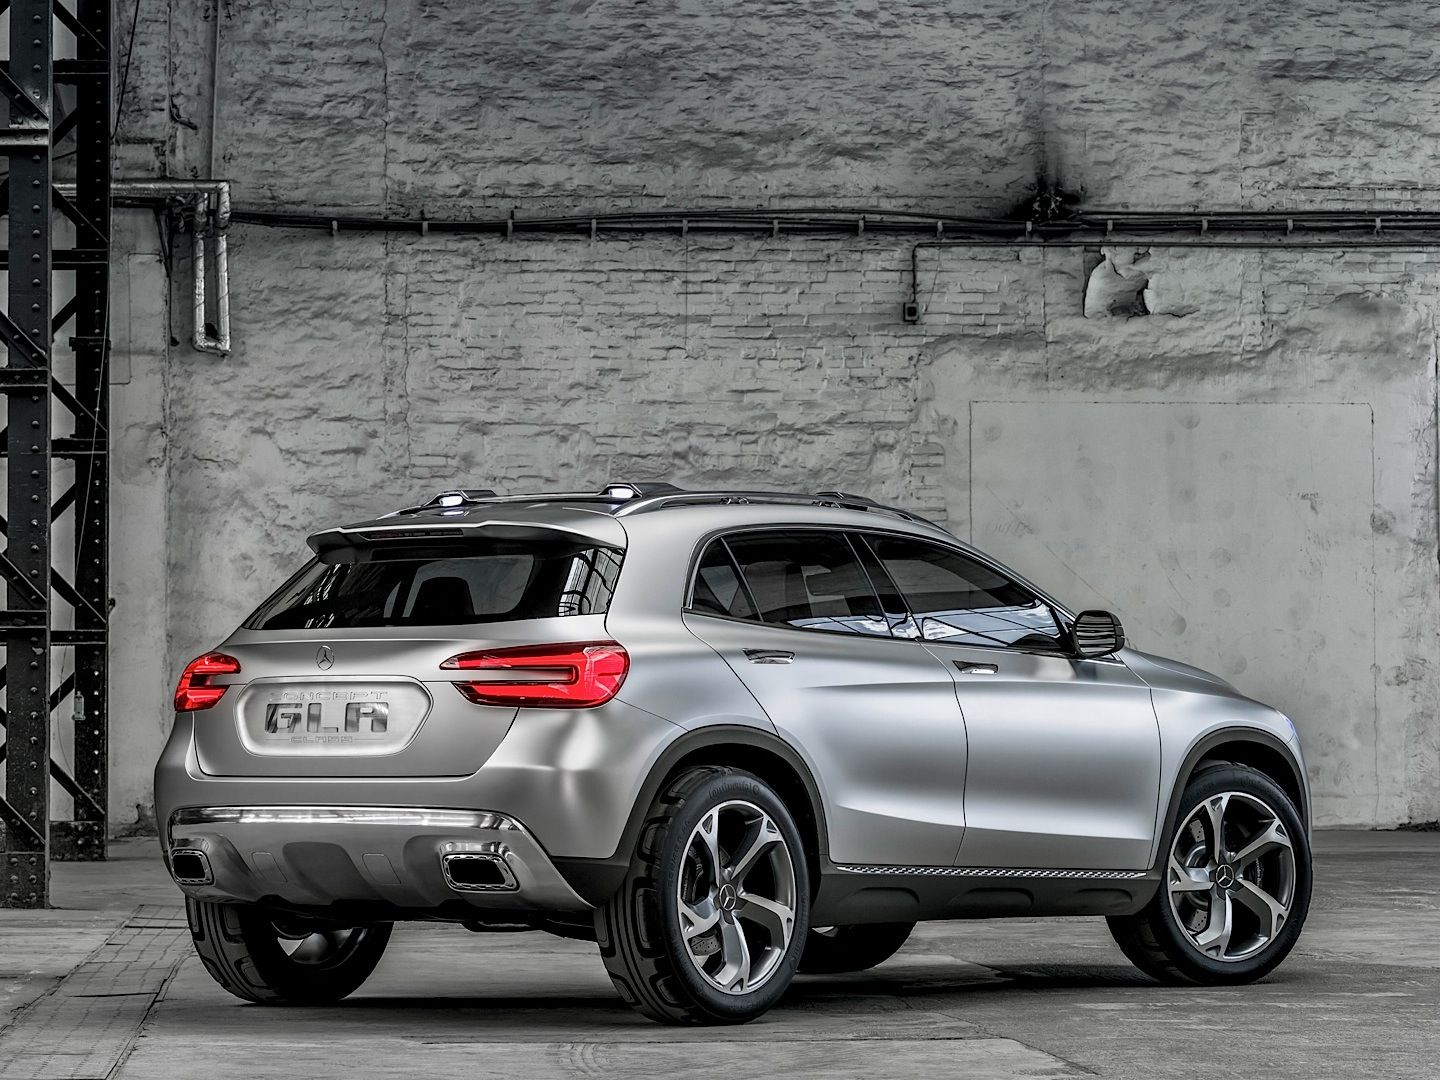 new car release dates uk 2014MercedesBenz GLA Prices and Release Date Speculations in the UK